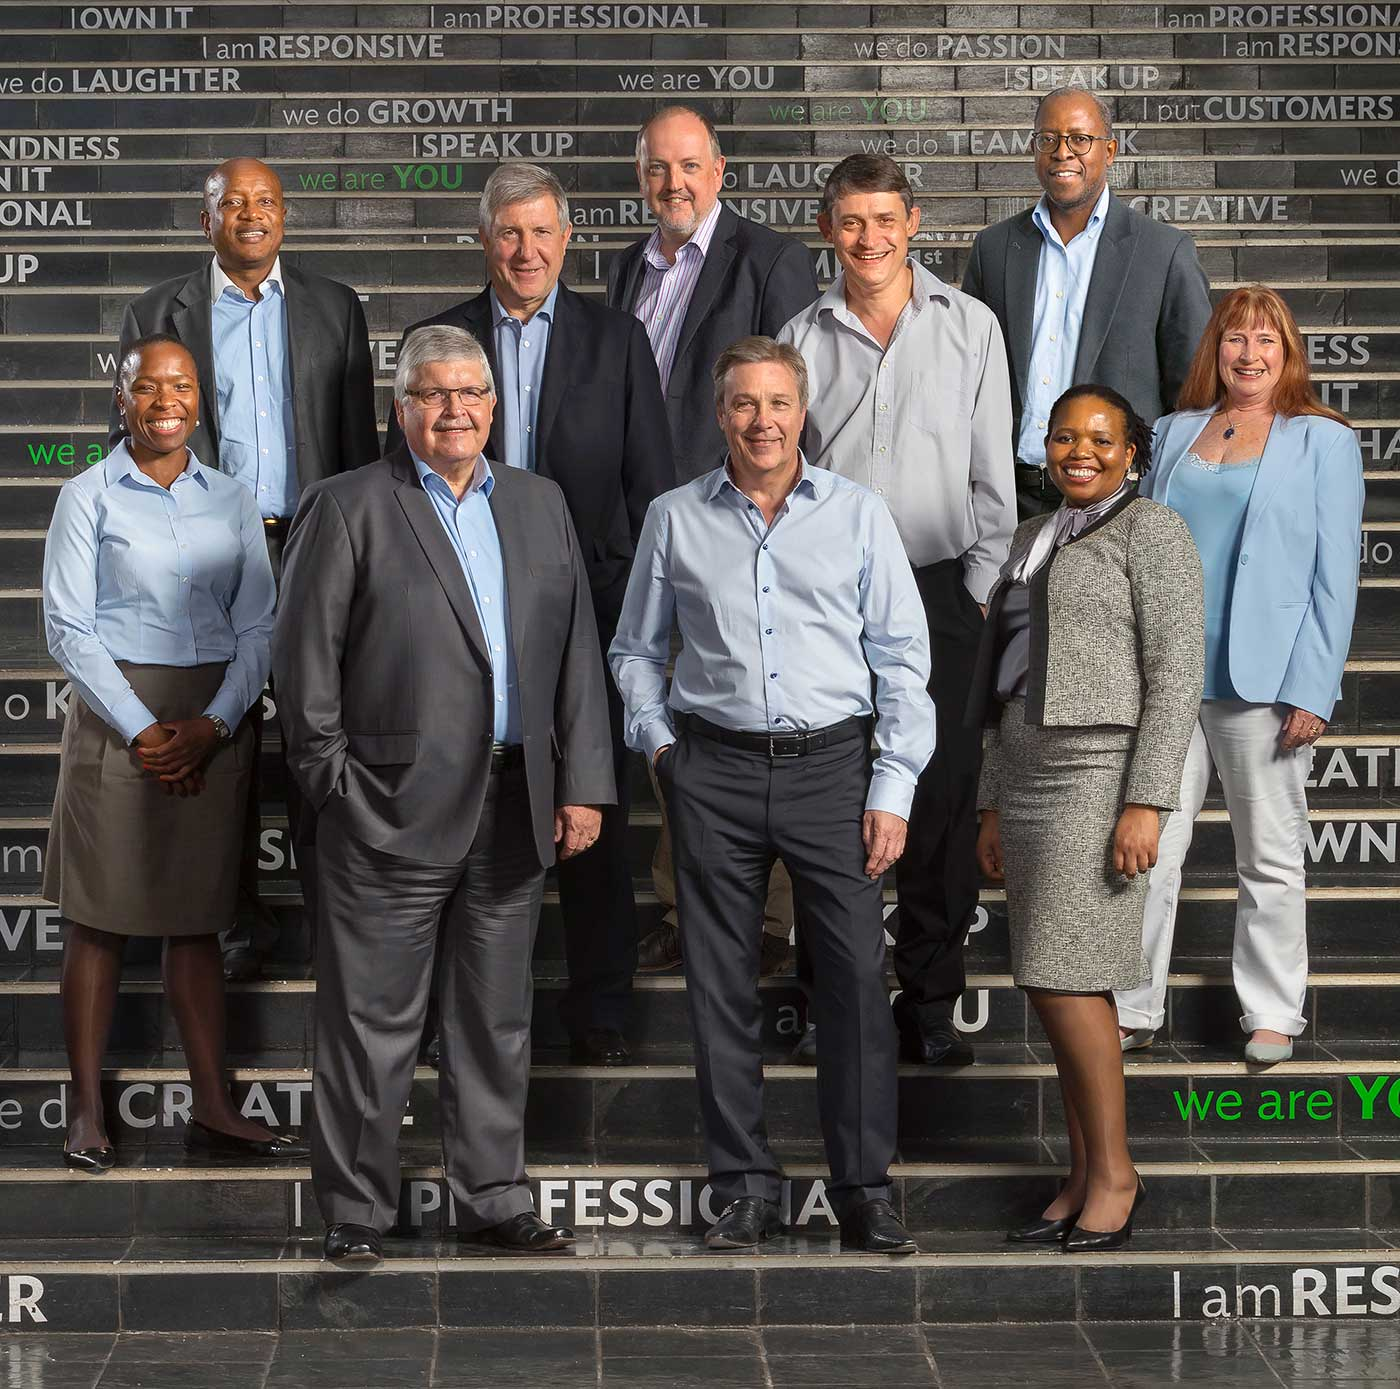 Board of directors - banking group - corporate photography by Geoff Brown